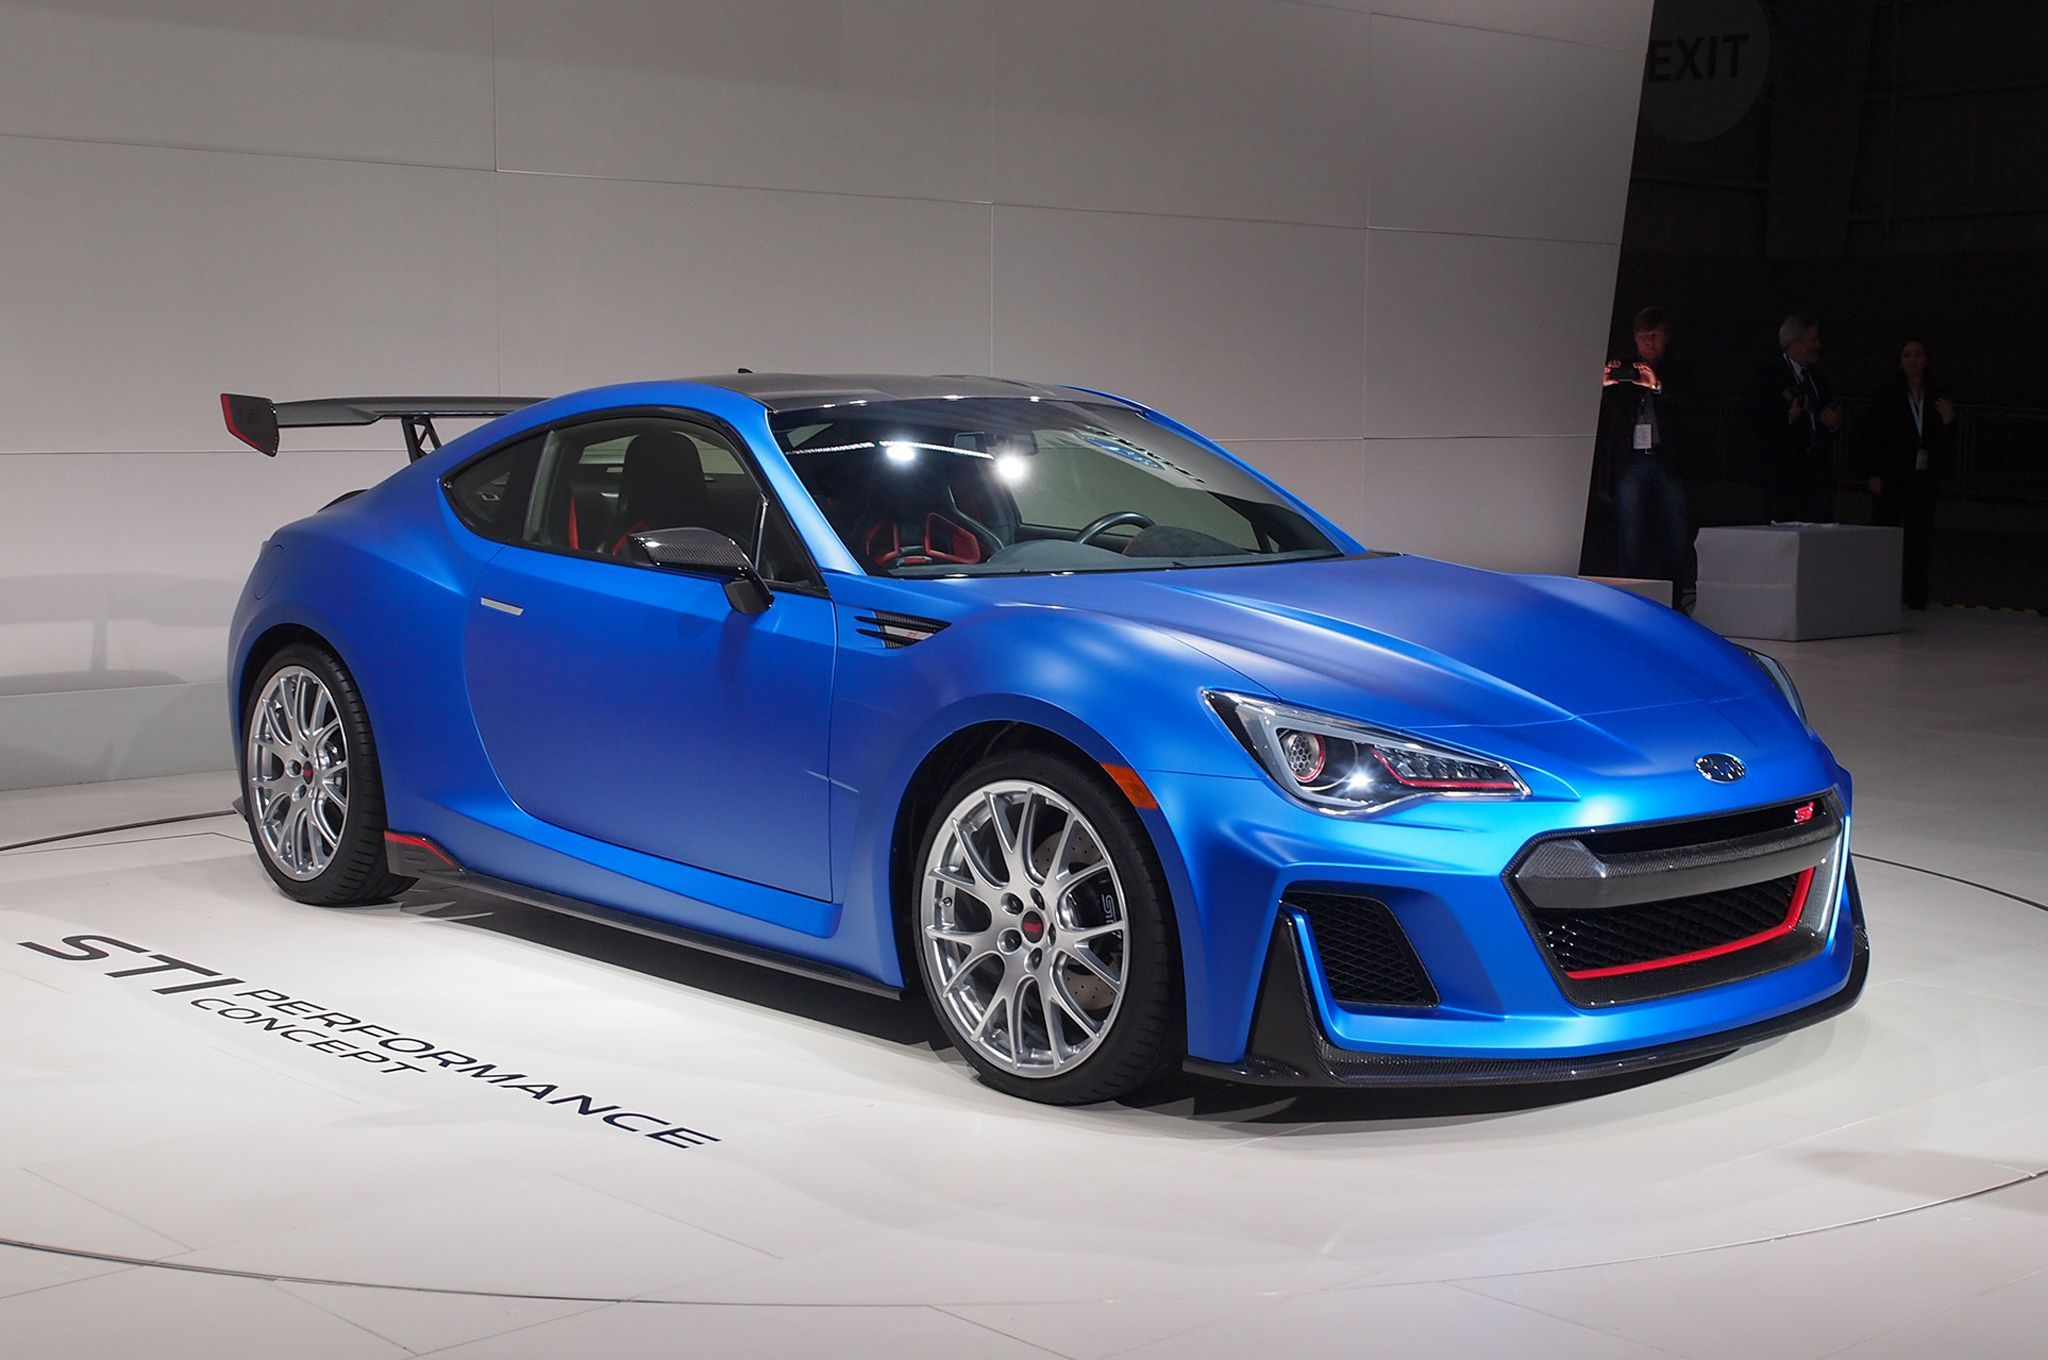 The Subaru Sti Performance Concept Shown At New York Auto Show Hints What A Brz Coupe Could Be If Top Spec Model Is Roved